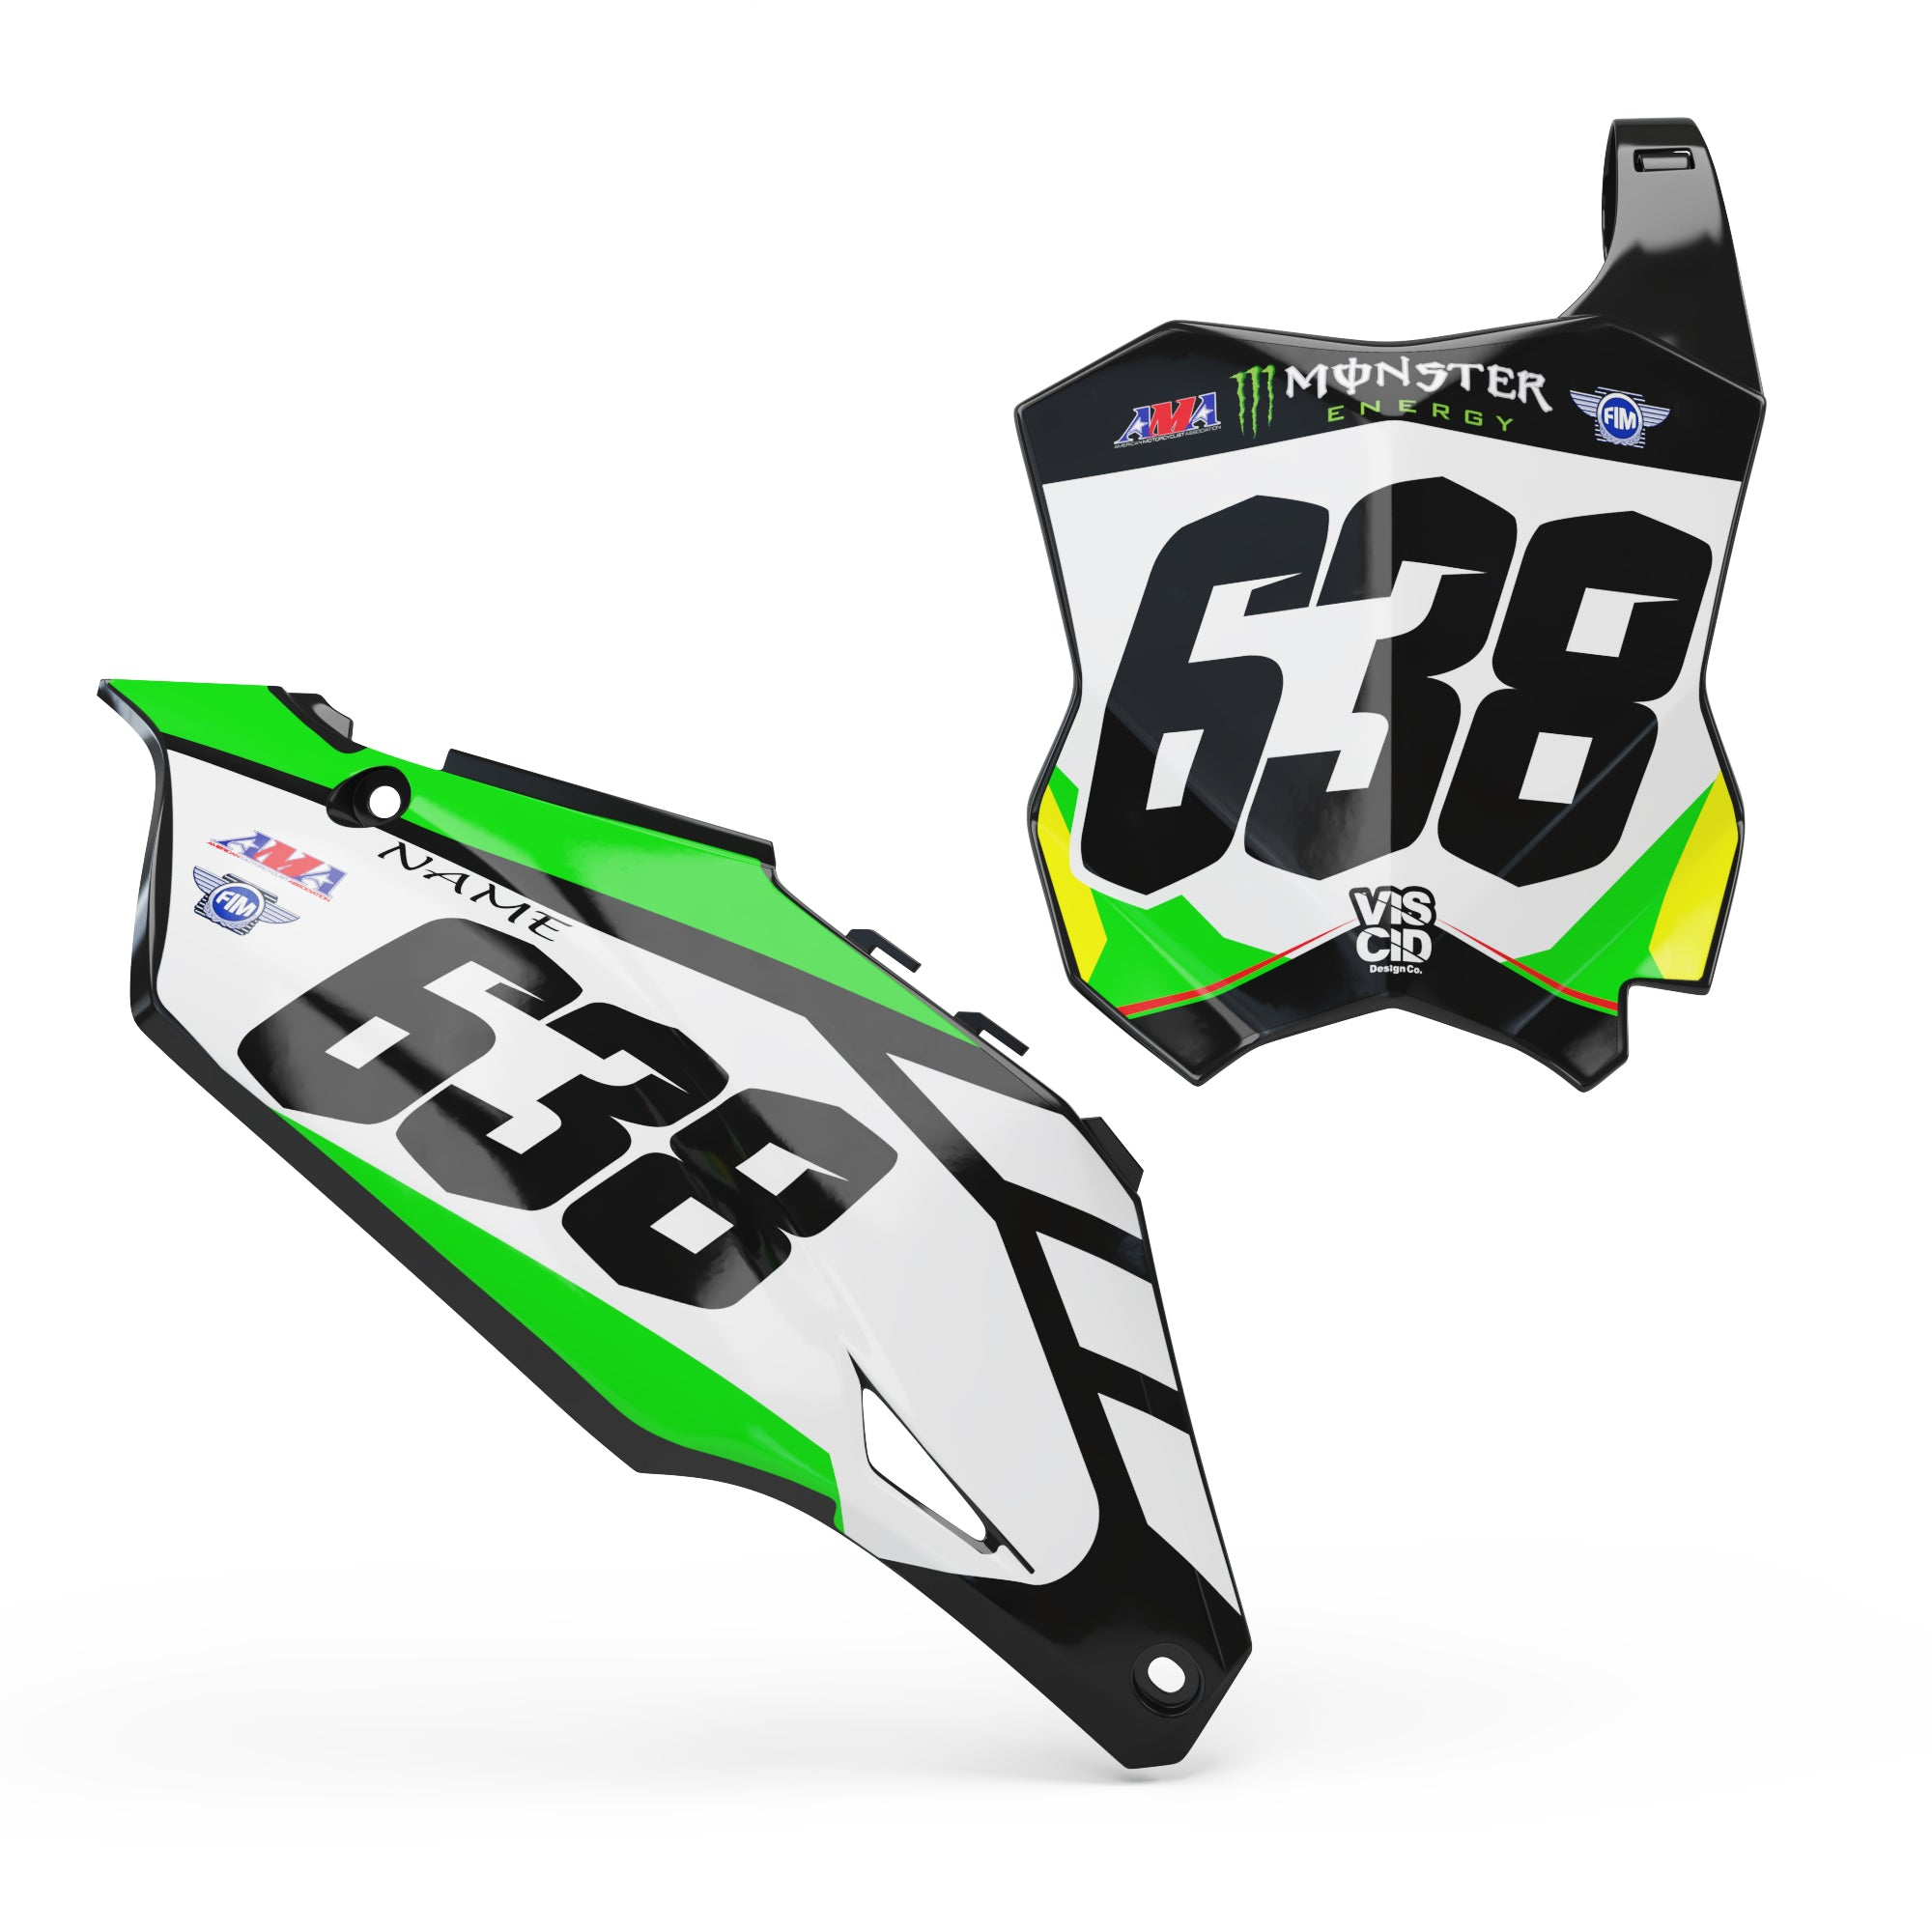 Kawasaki Number plate set -  Spark series